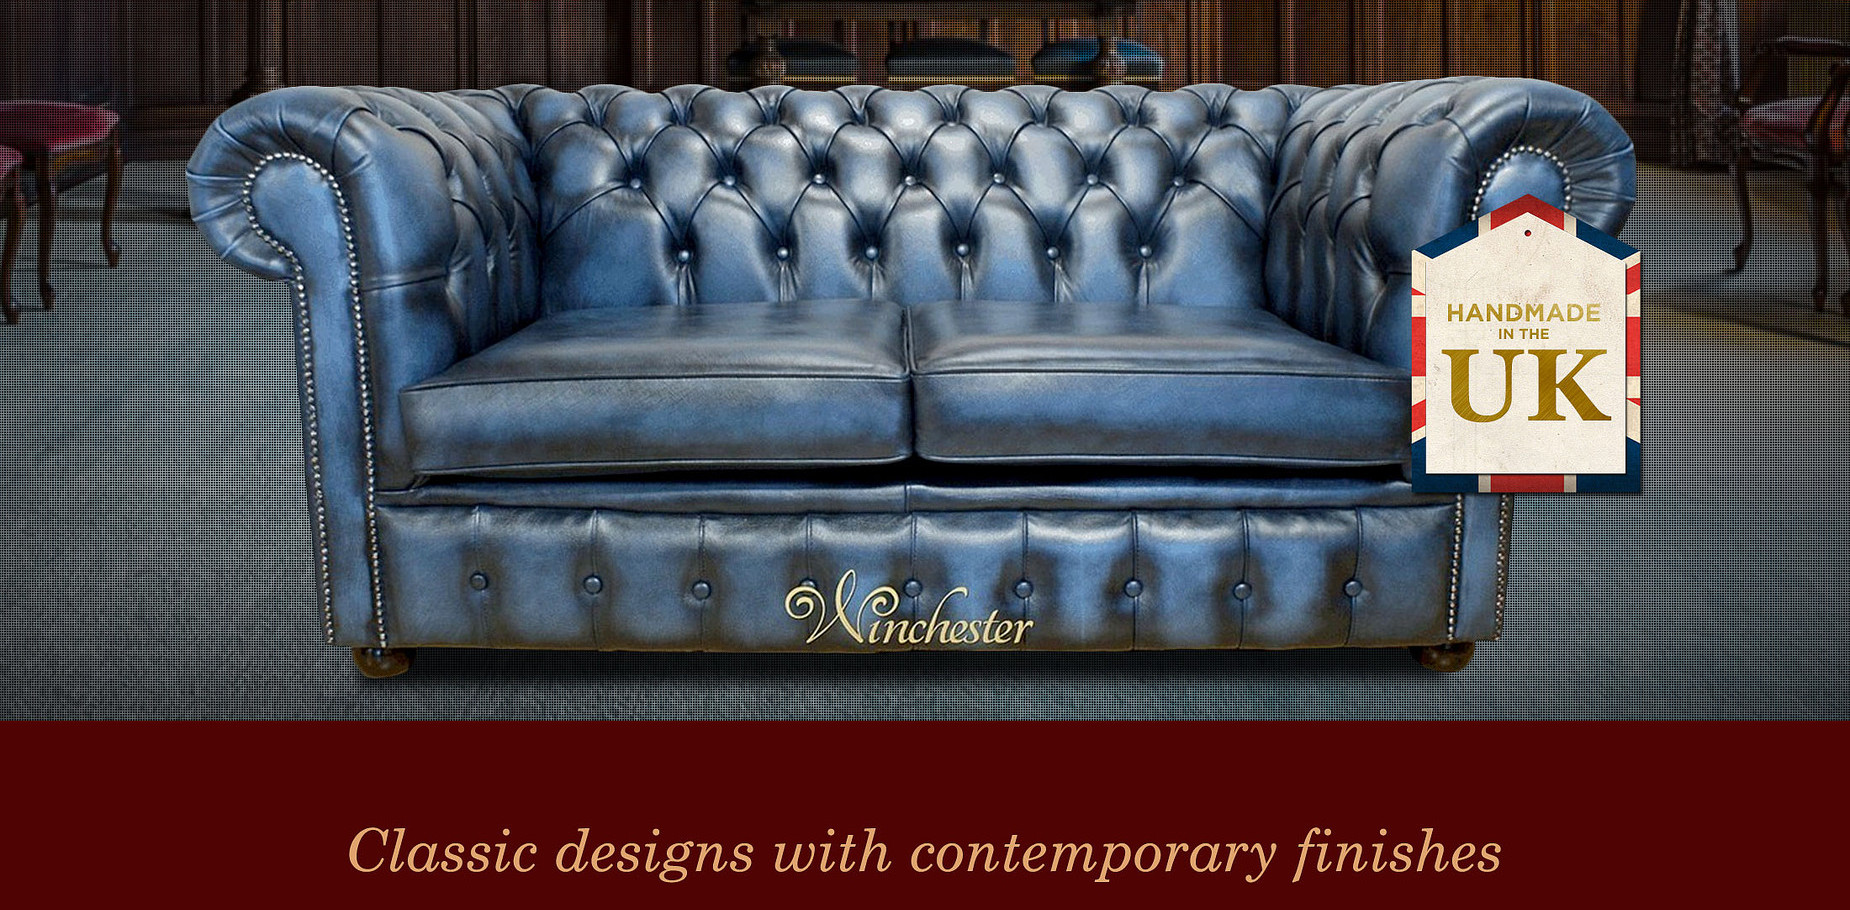 2 Seat Chesterfield Sofa